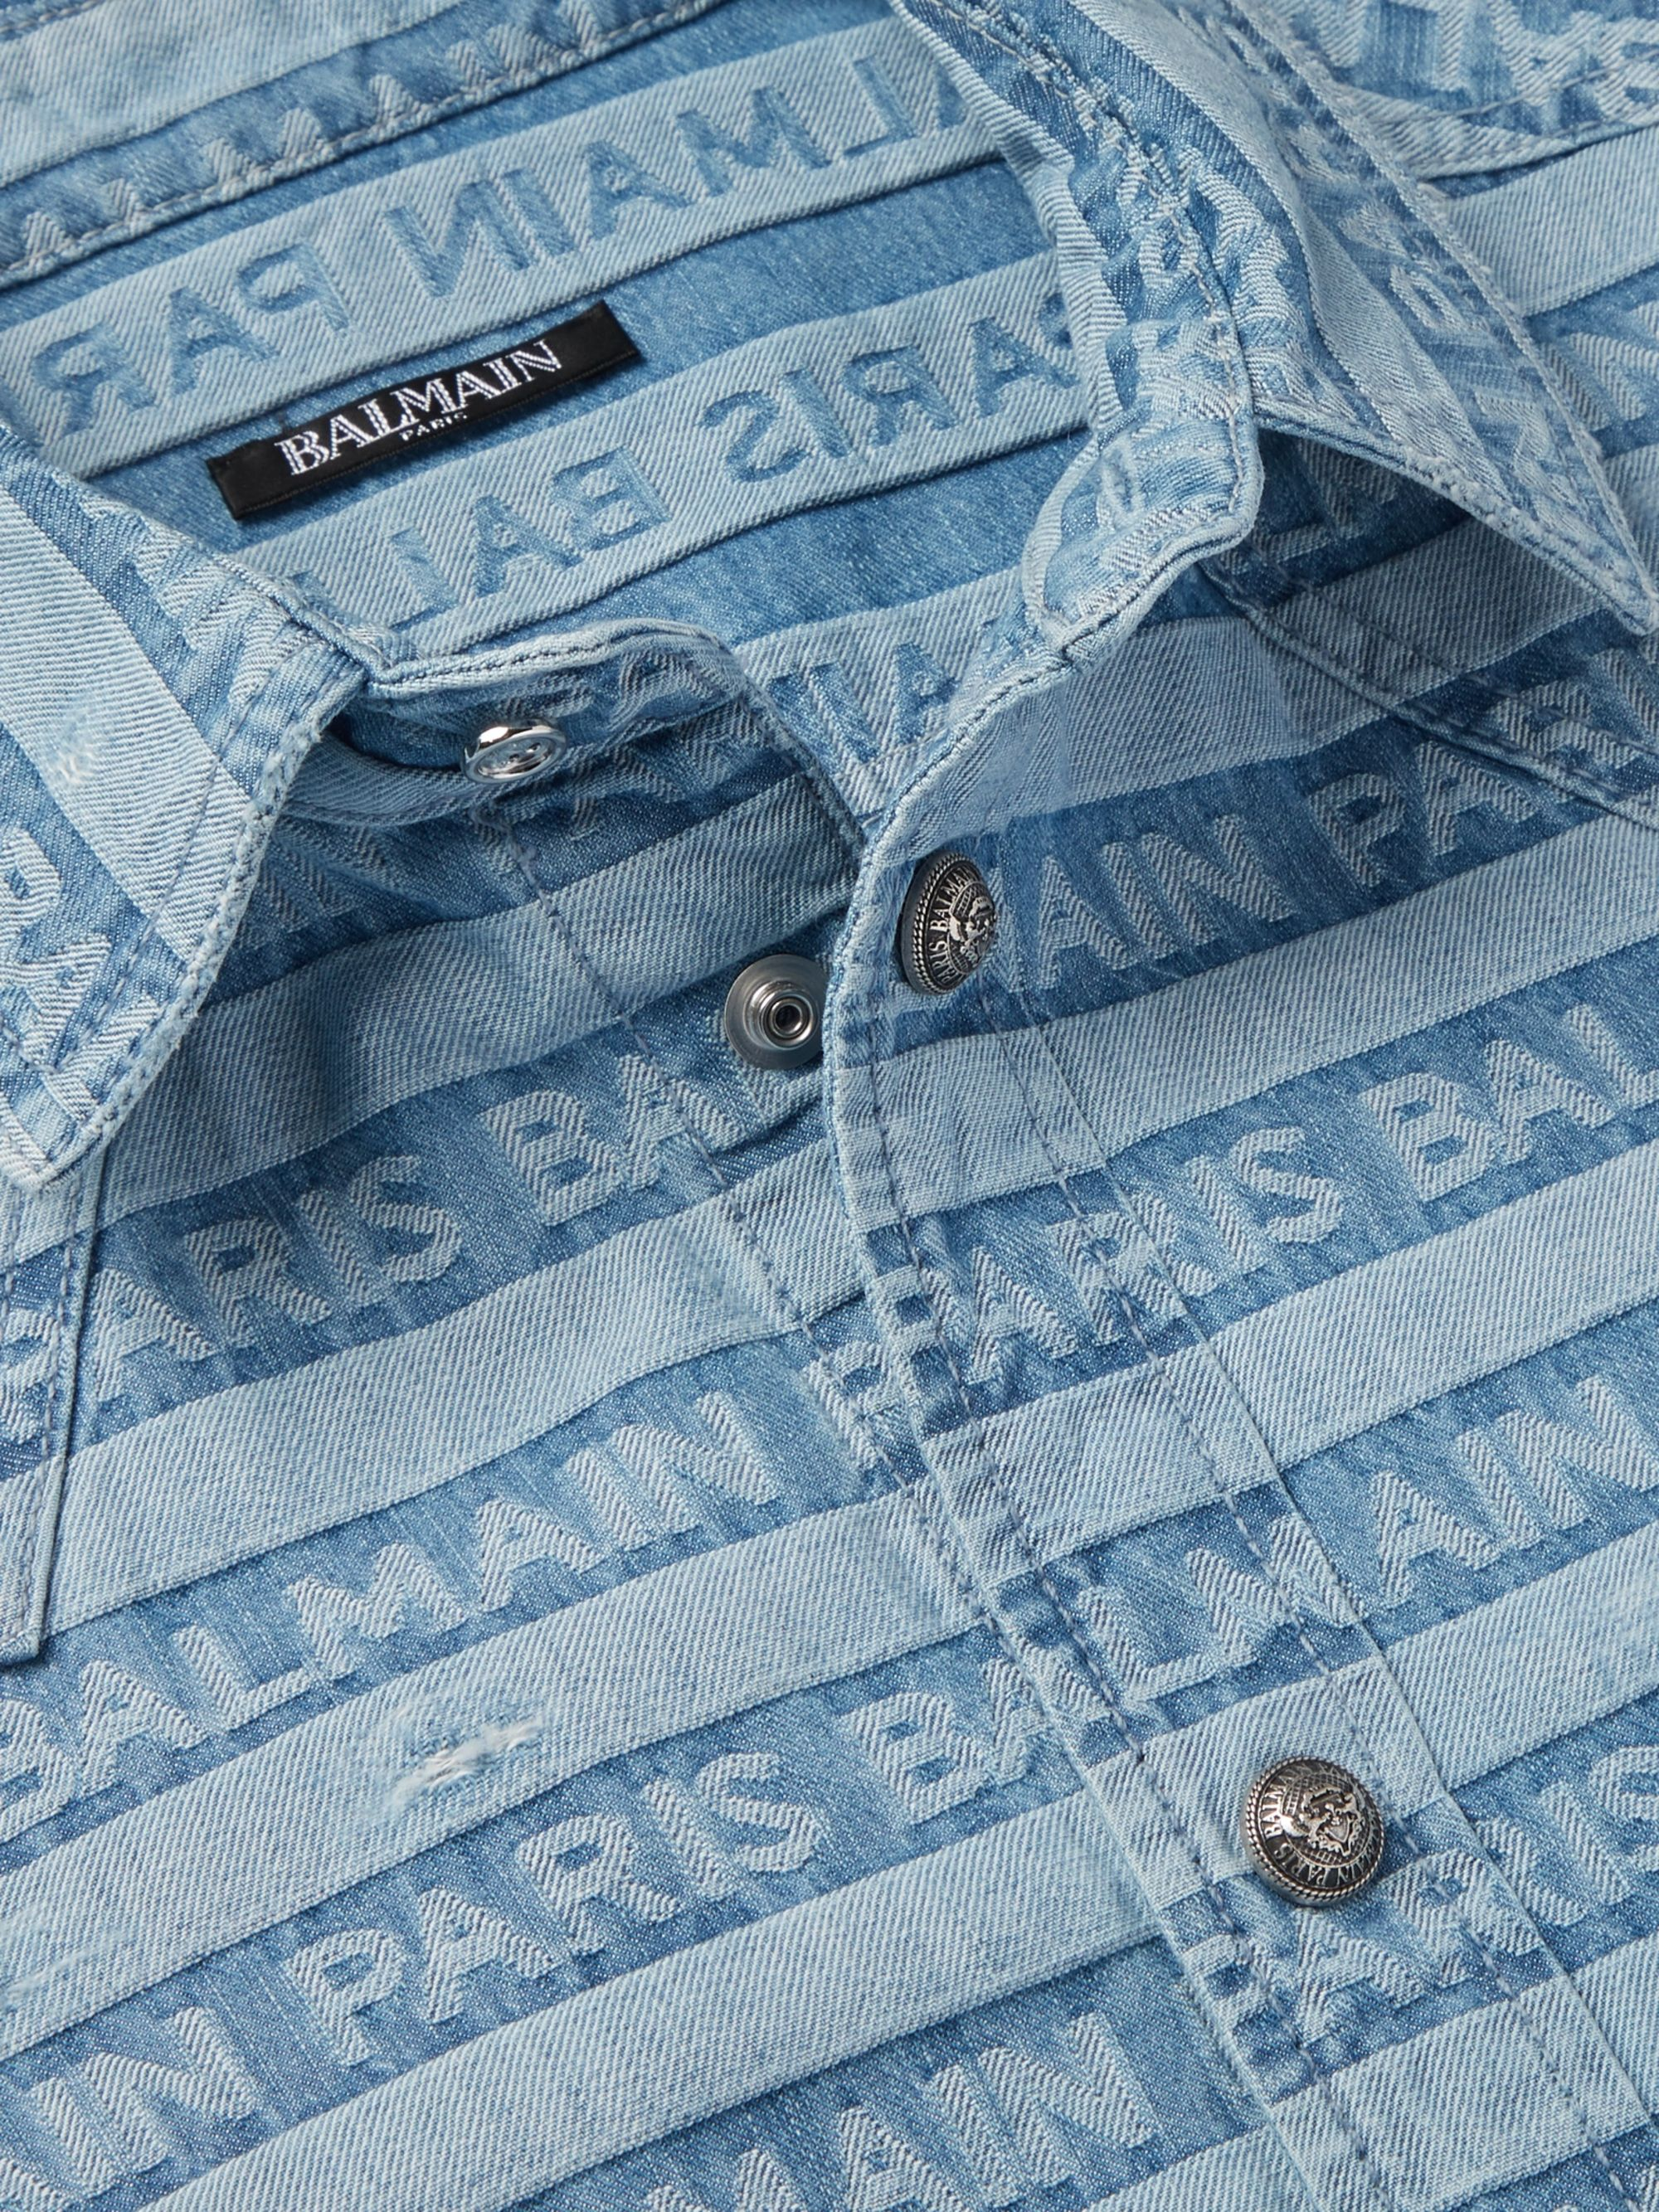 Balmain Slim-Fit Logo-Jacquard Distressed Denim Western Shirt